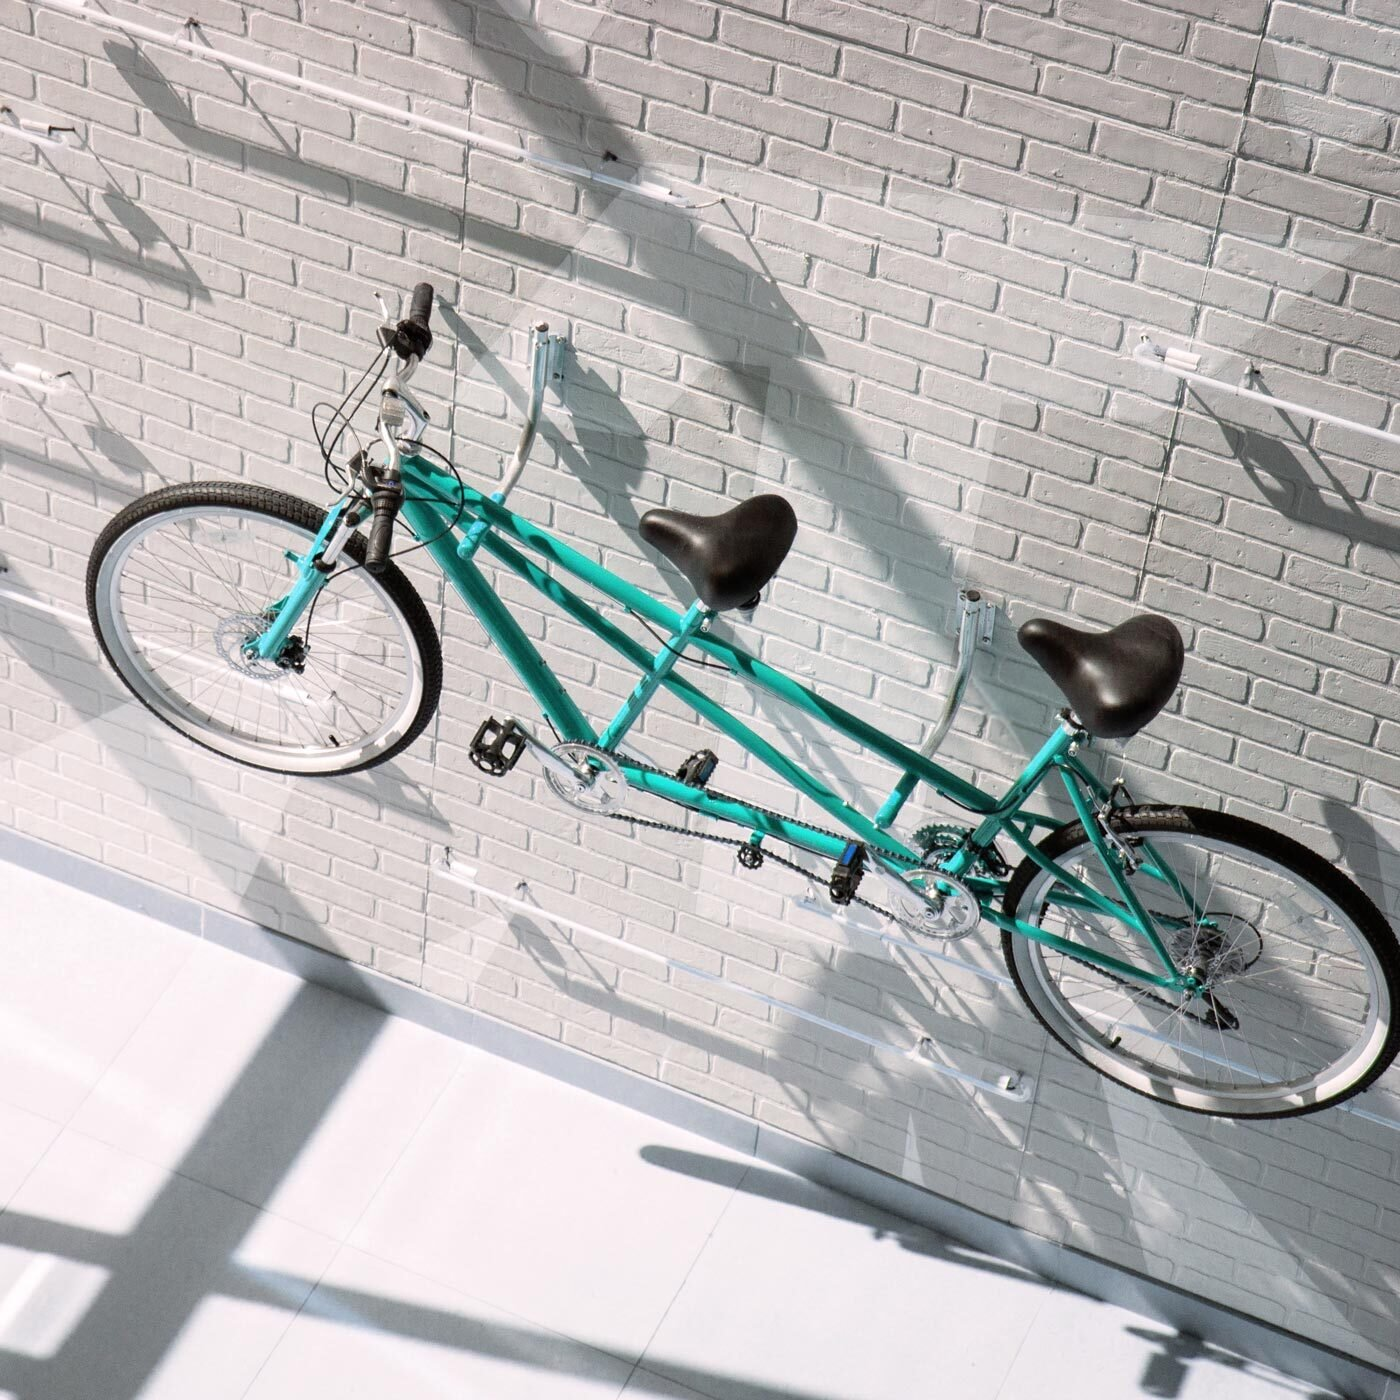 An image of a tandem bicycle to illustrate togetherness and support